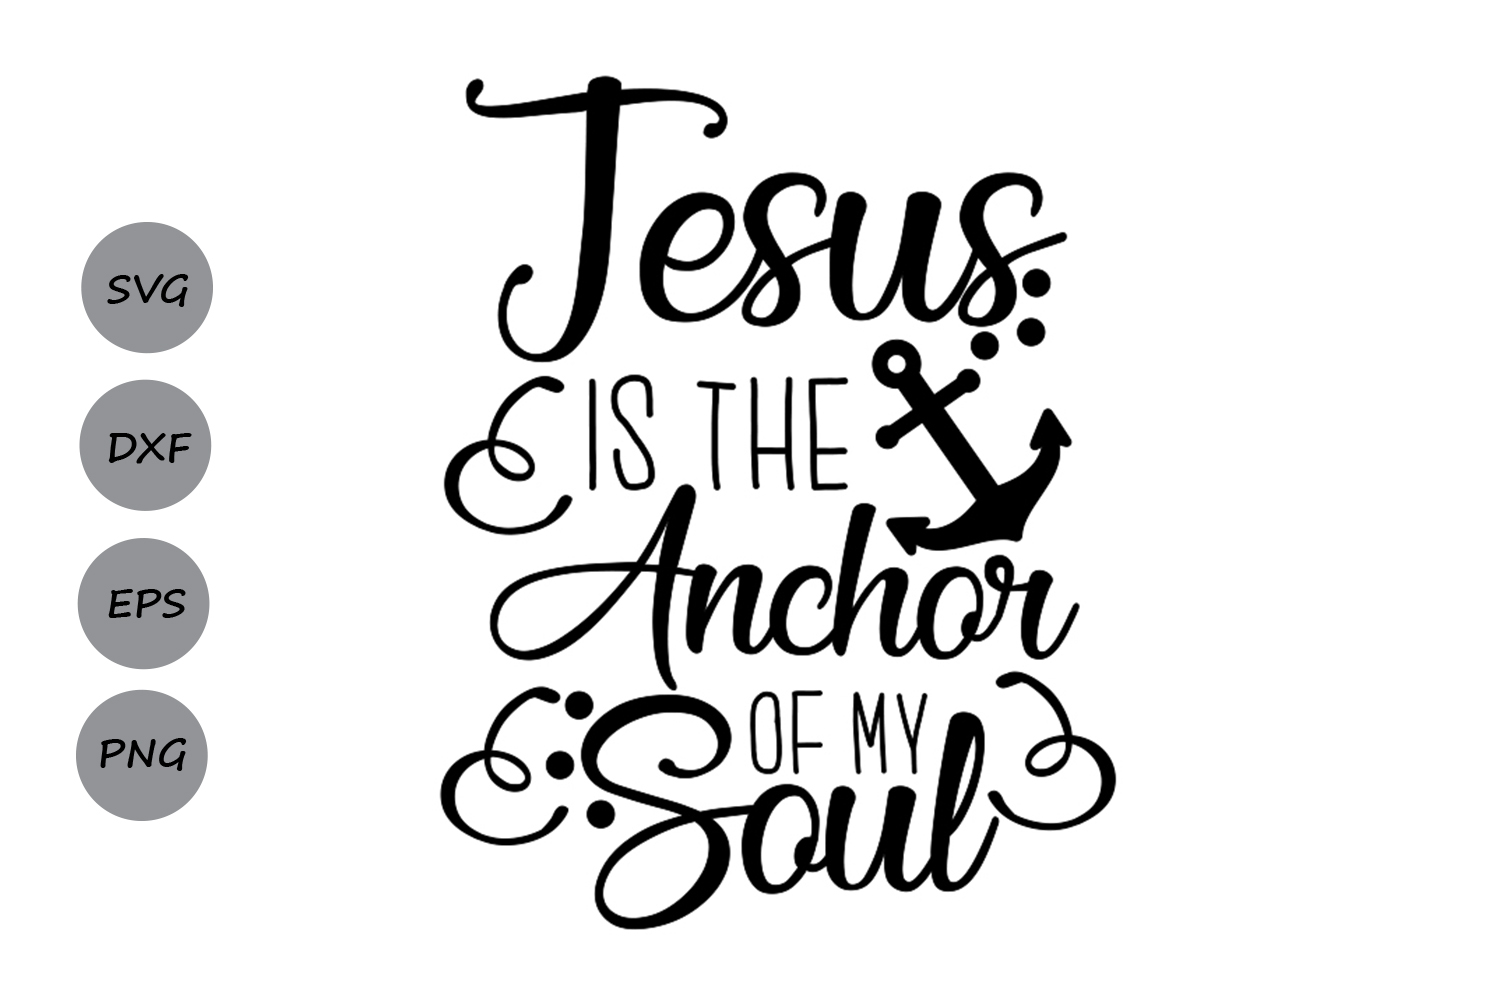 Download Free Jesus Is My Anchor Svg Graphic By Cosmosfineart Creative Fabrica for Cricut Explore, Silhouette and other cutting machines.